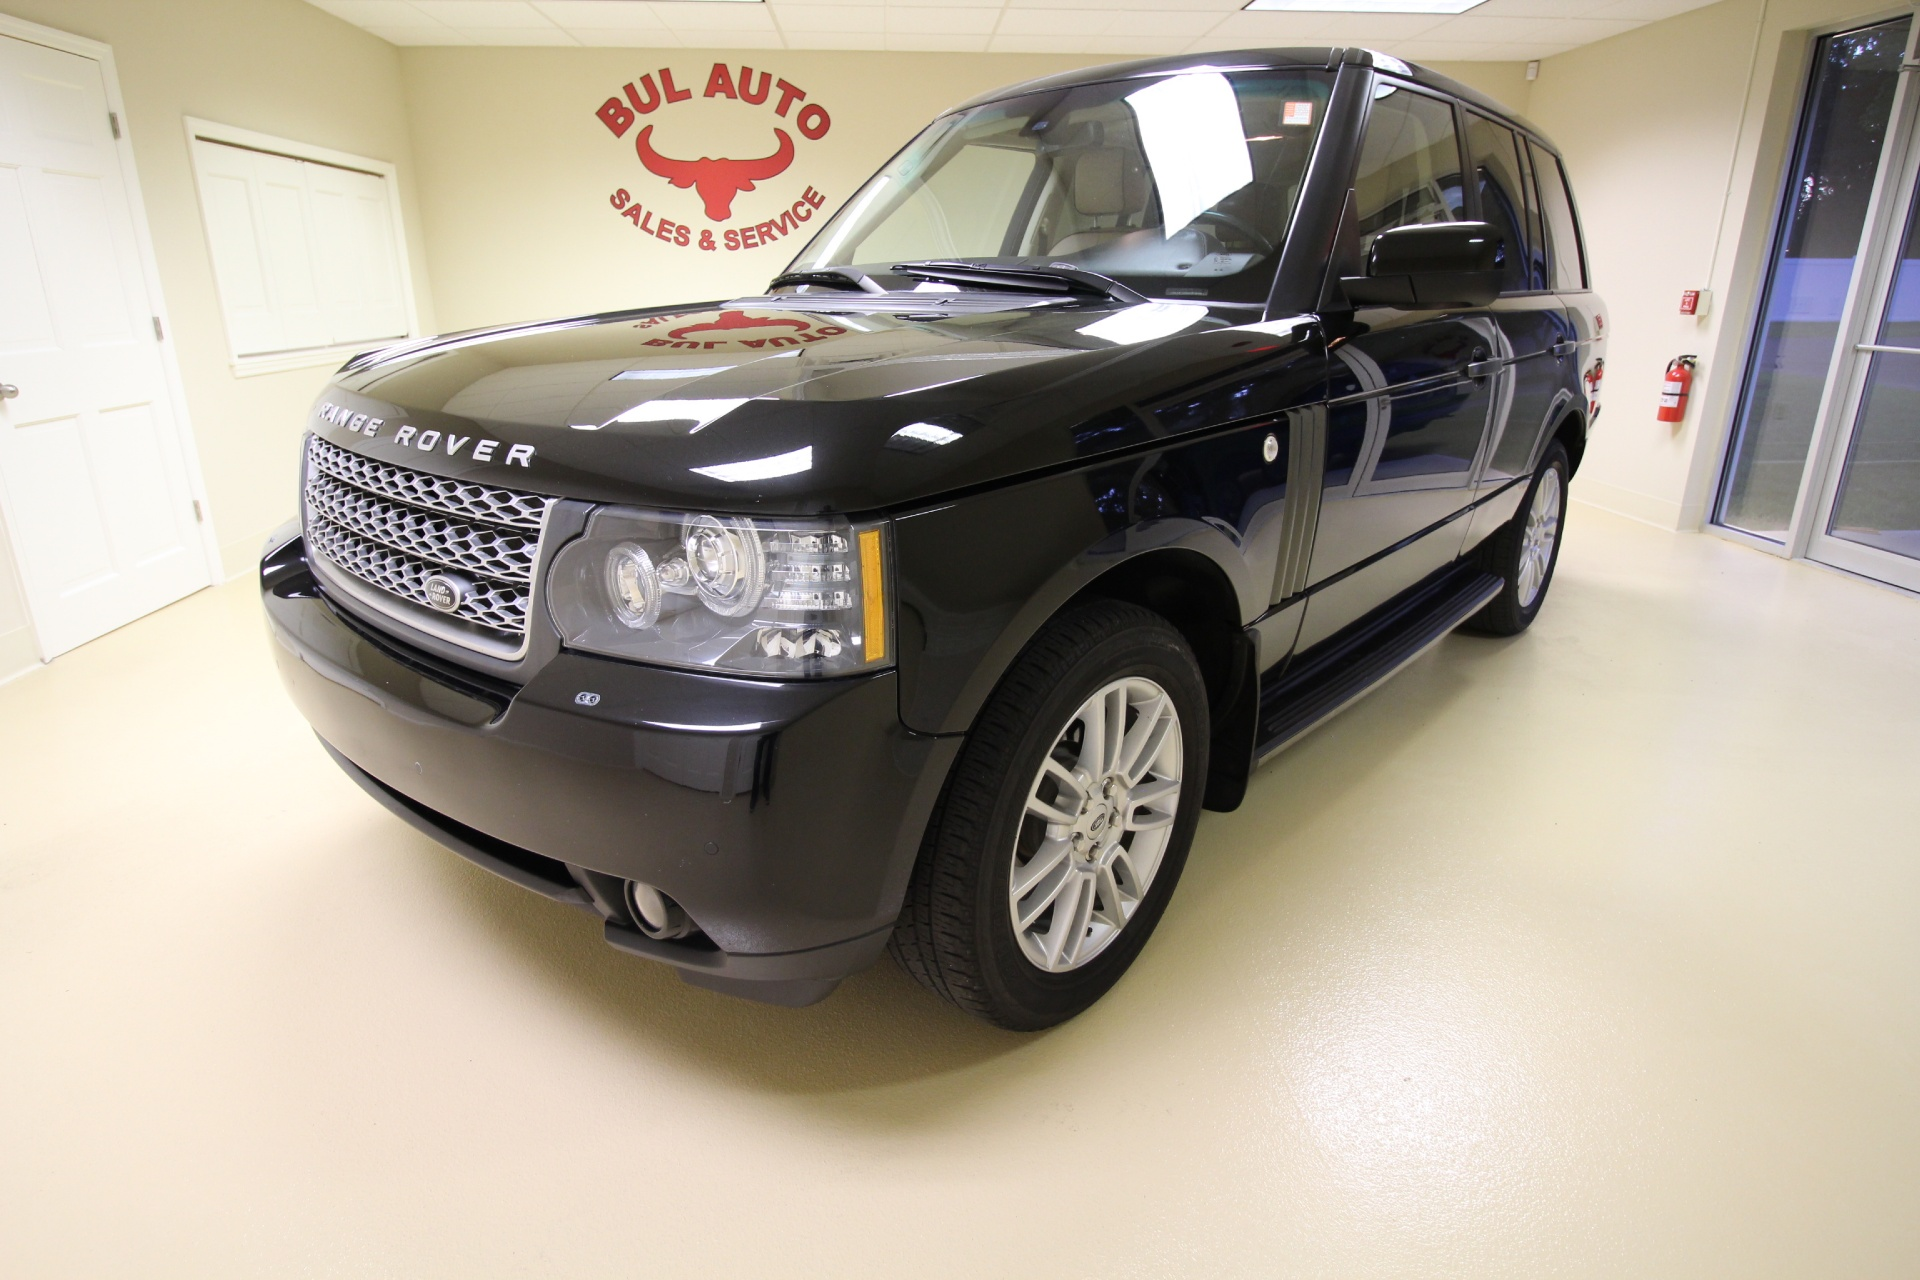 2010 land rover range rover hse stock 16141 for sale. Black Bedroom Furniture Sets. Home Design Ideas